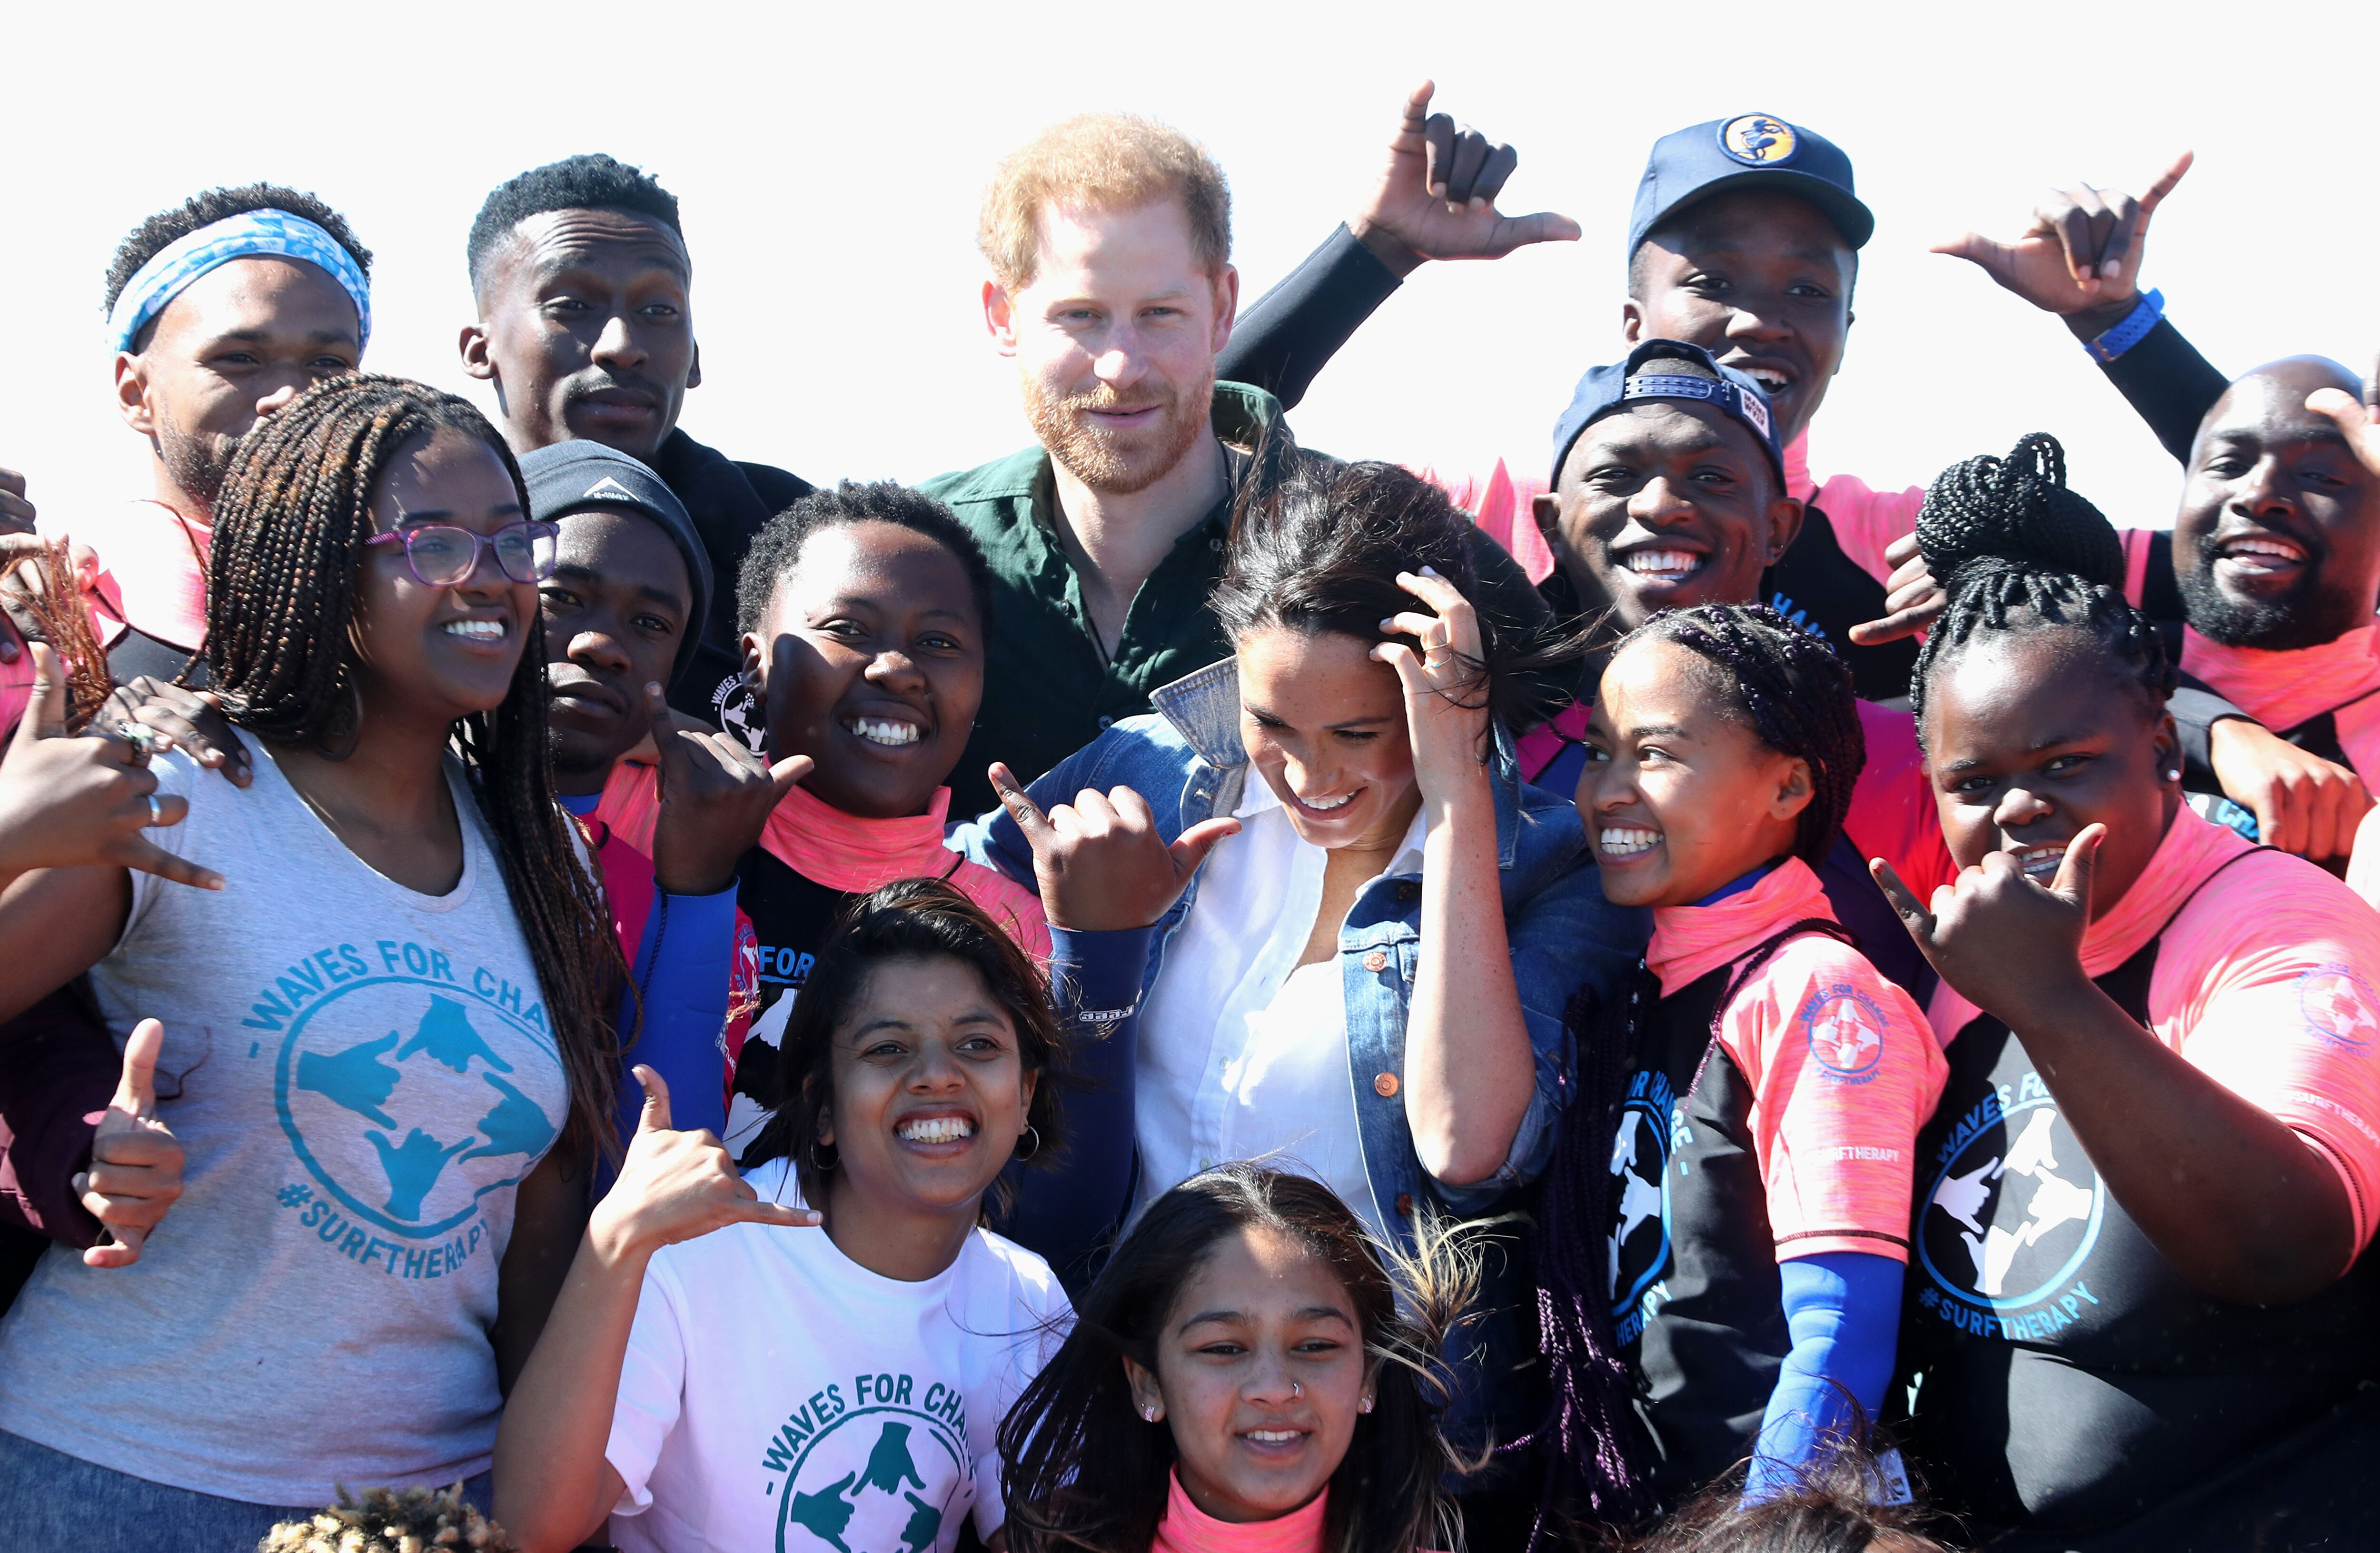 Prince Harry and Meghan Markle on their African tour/ Source: Getty Images